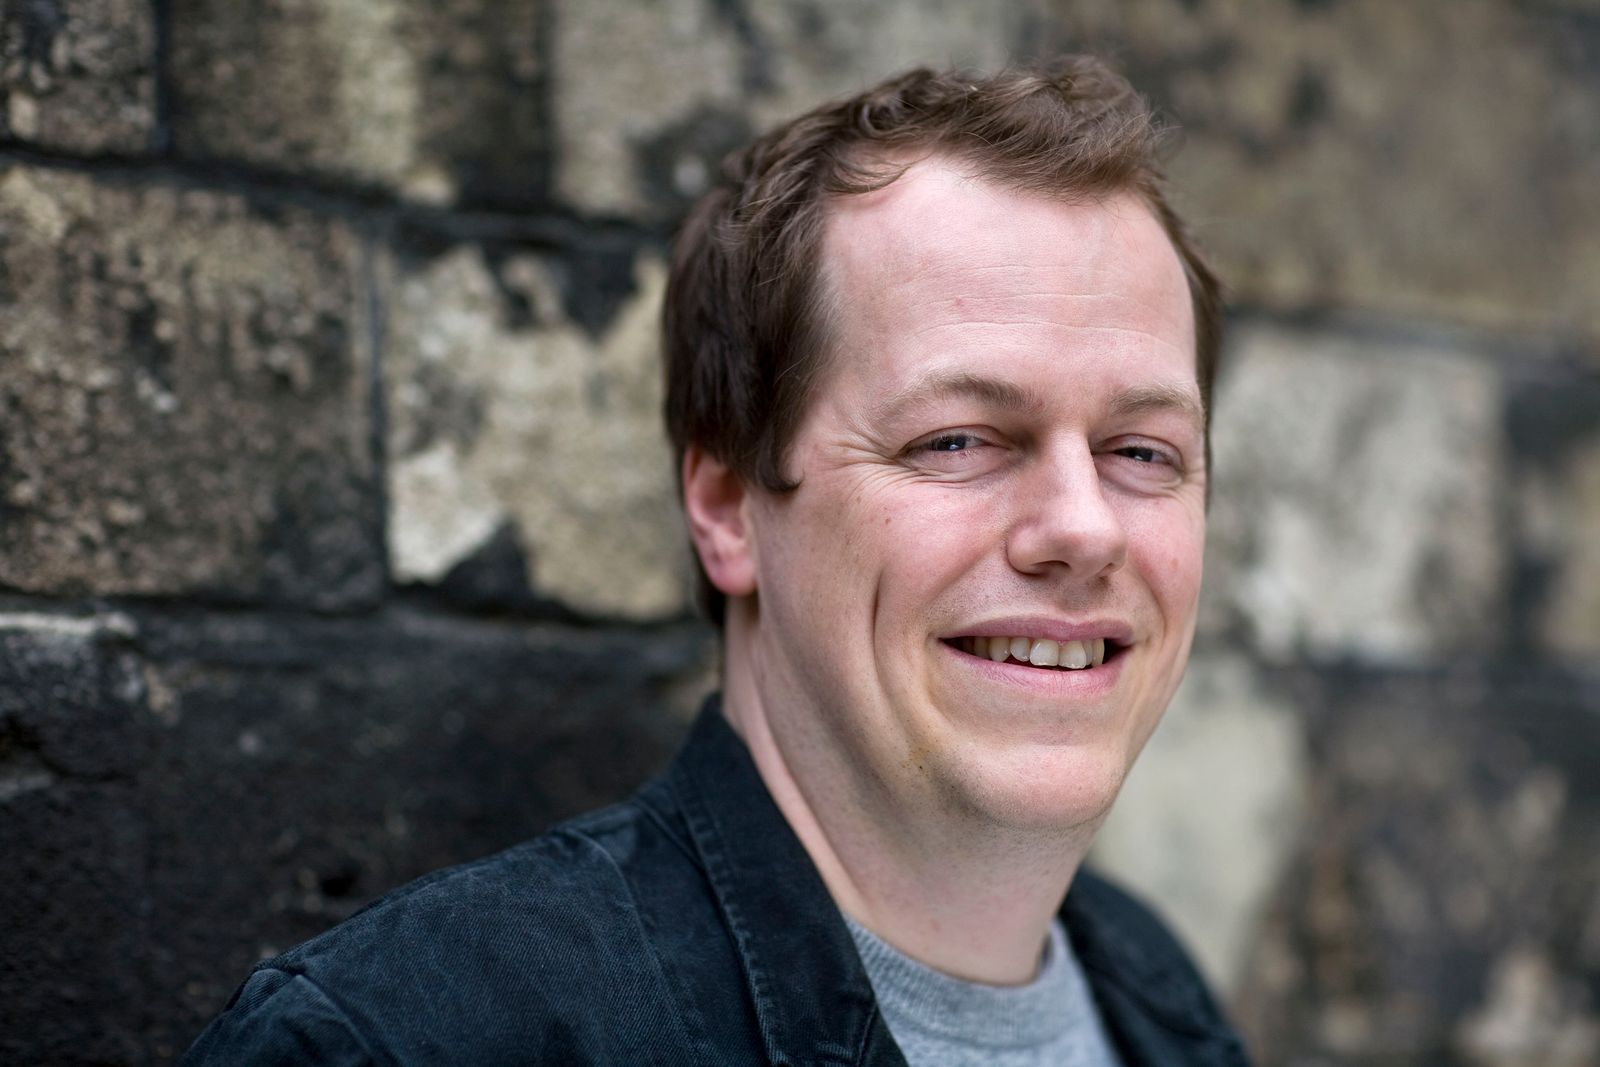 Tom Parker Bowles poses for a portrait at the Oxford Literary Festival in Christ Church, on March 26, 2010 | Getty Images